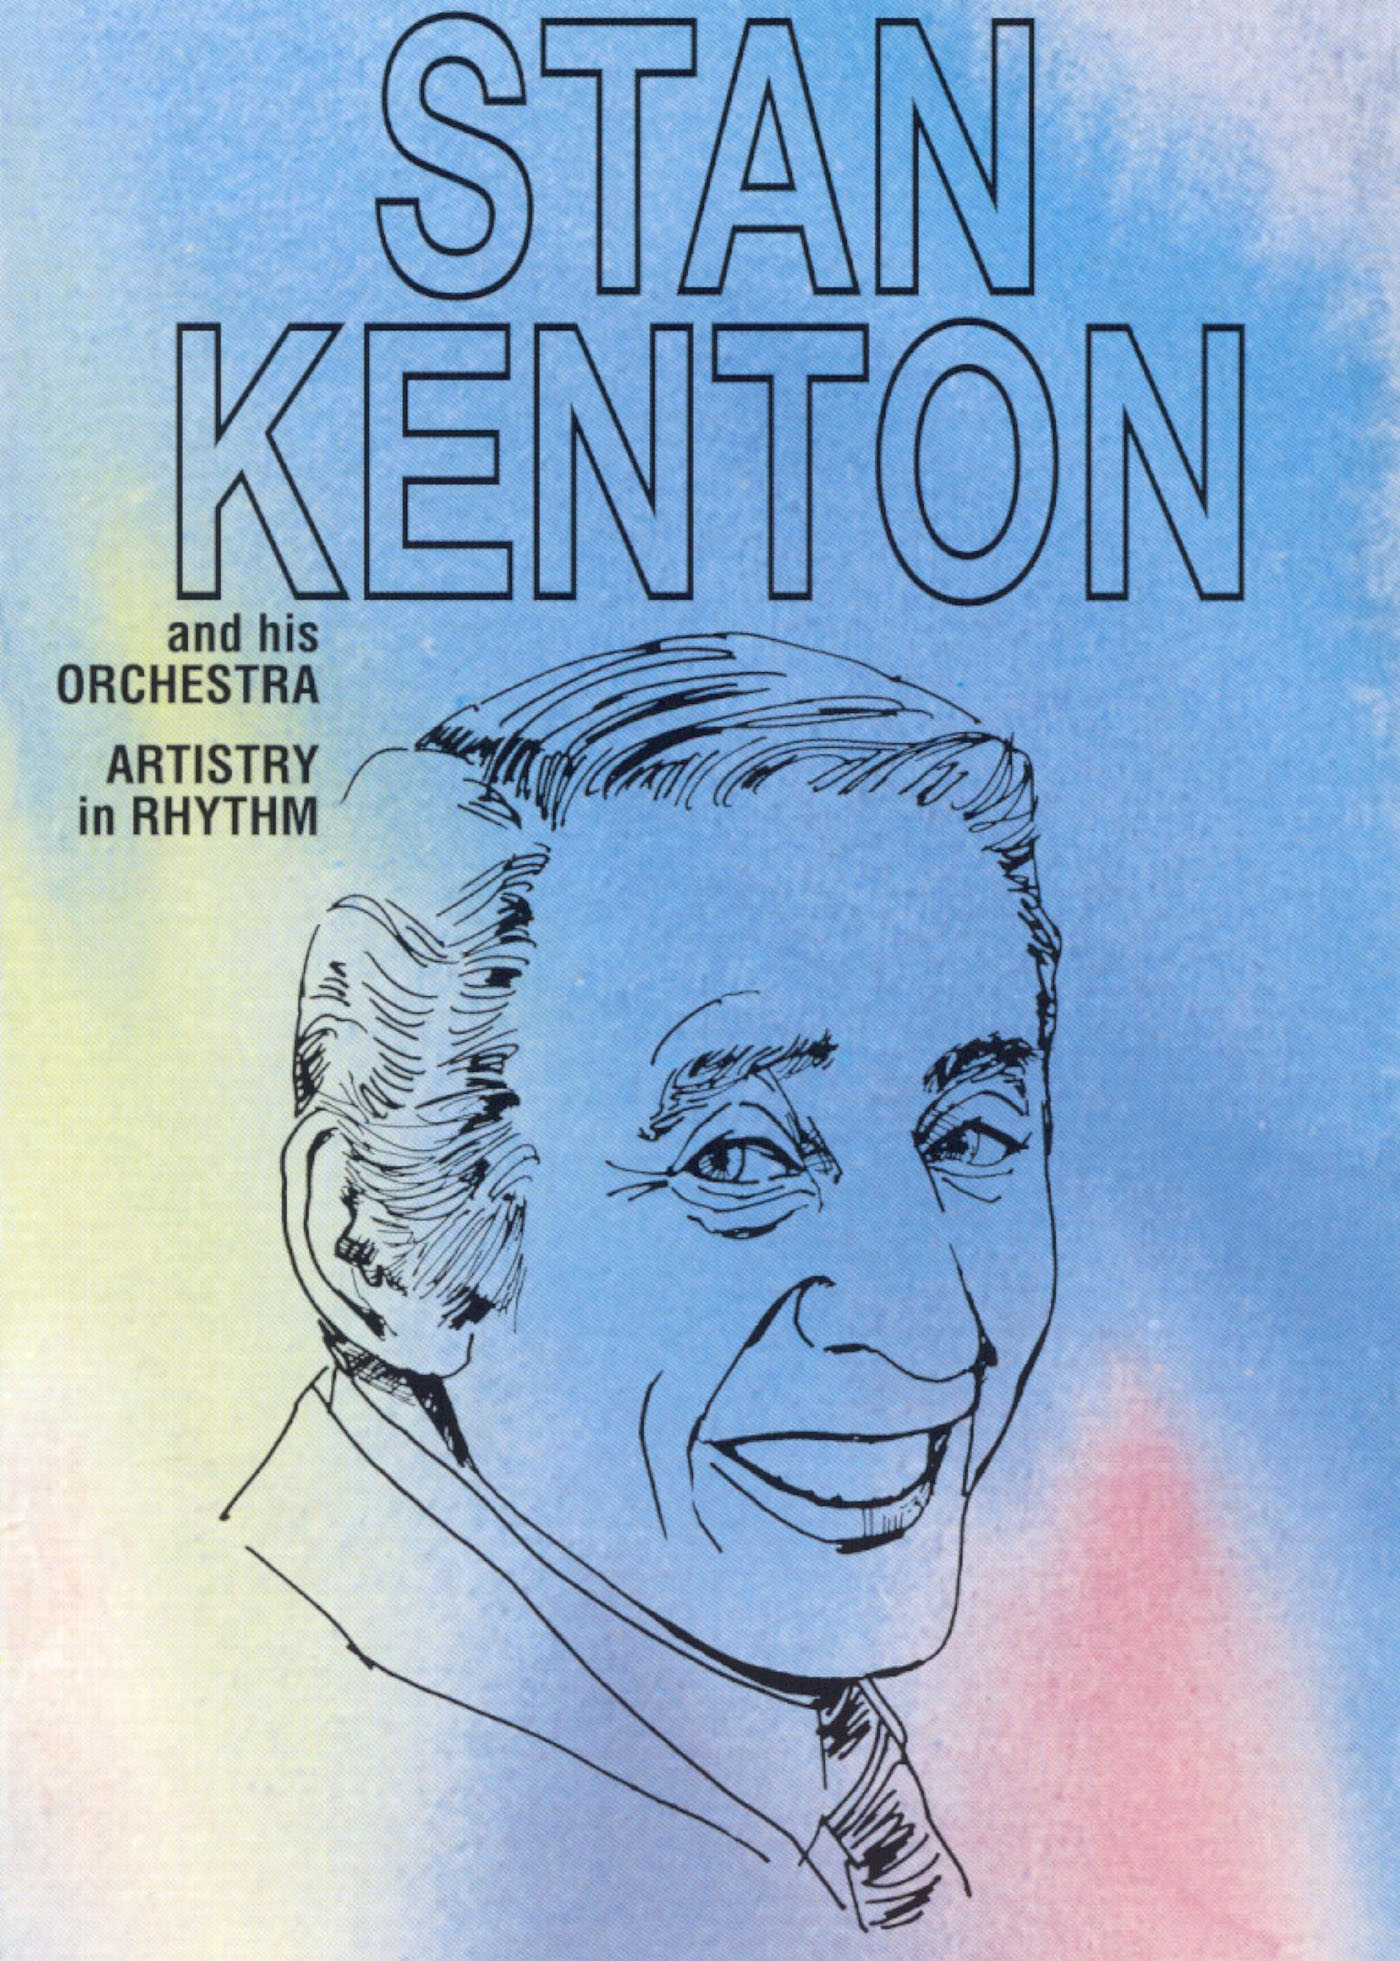 Stan Kenton and Orchestra: Artristry In Rhythm